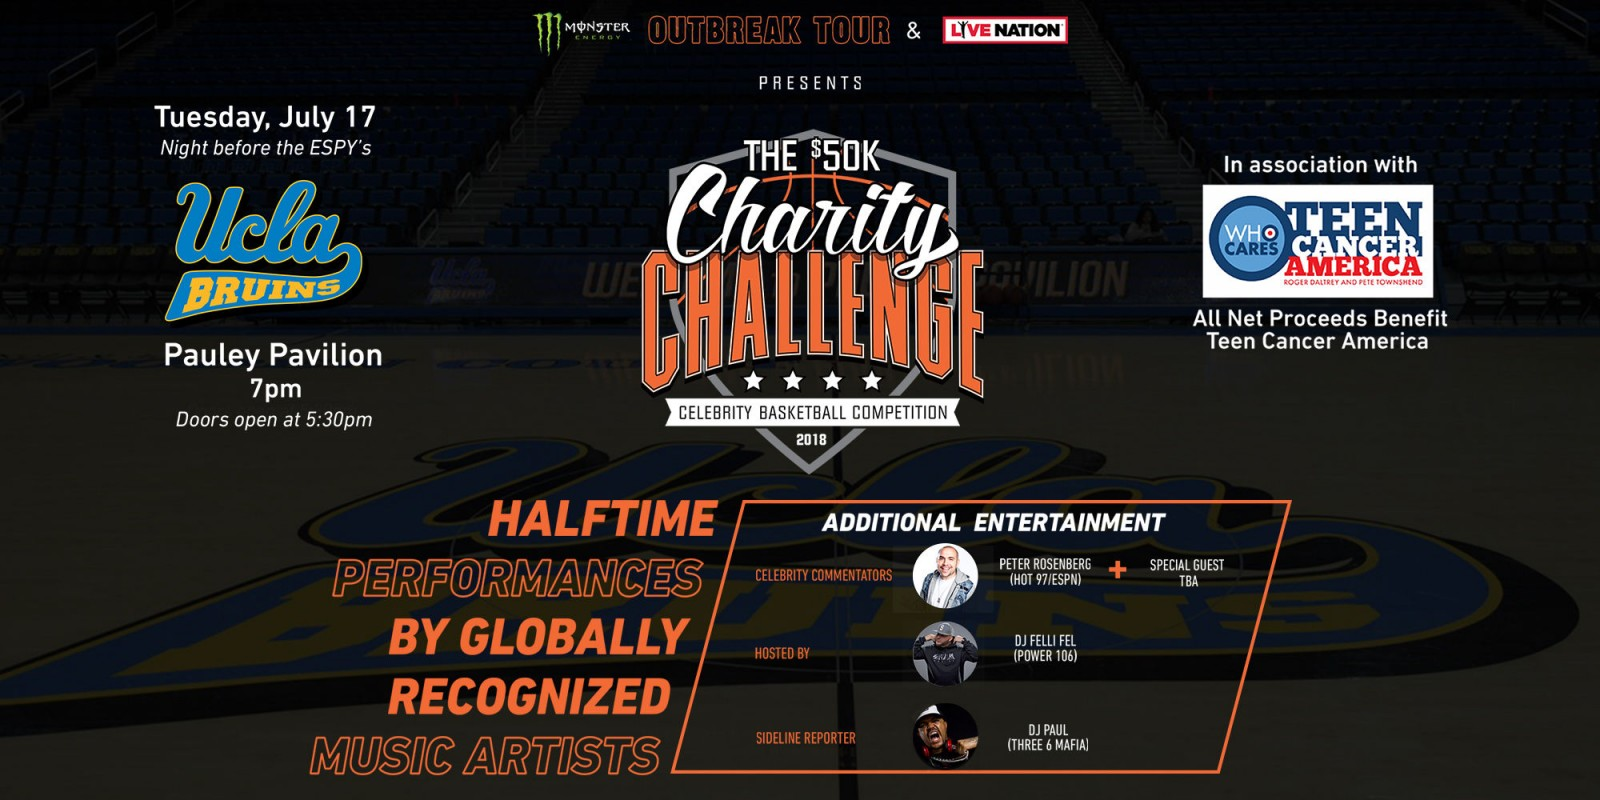 2018 web event hero for the 50k charity basketball game outbreak